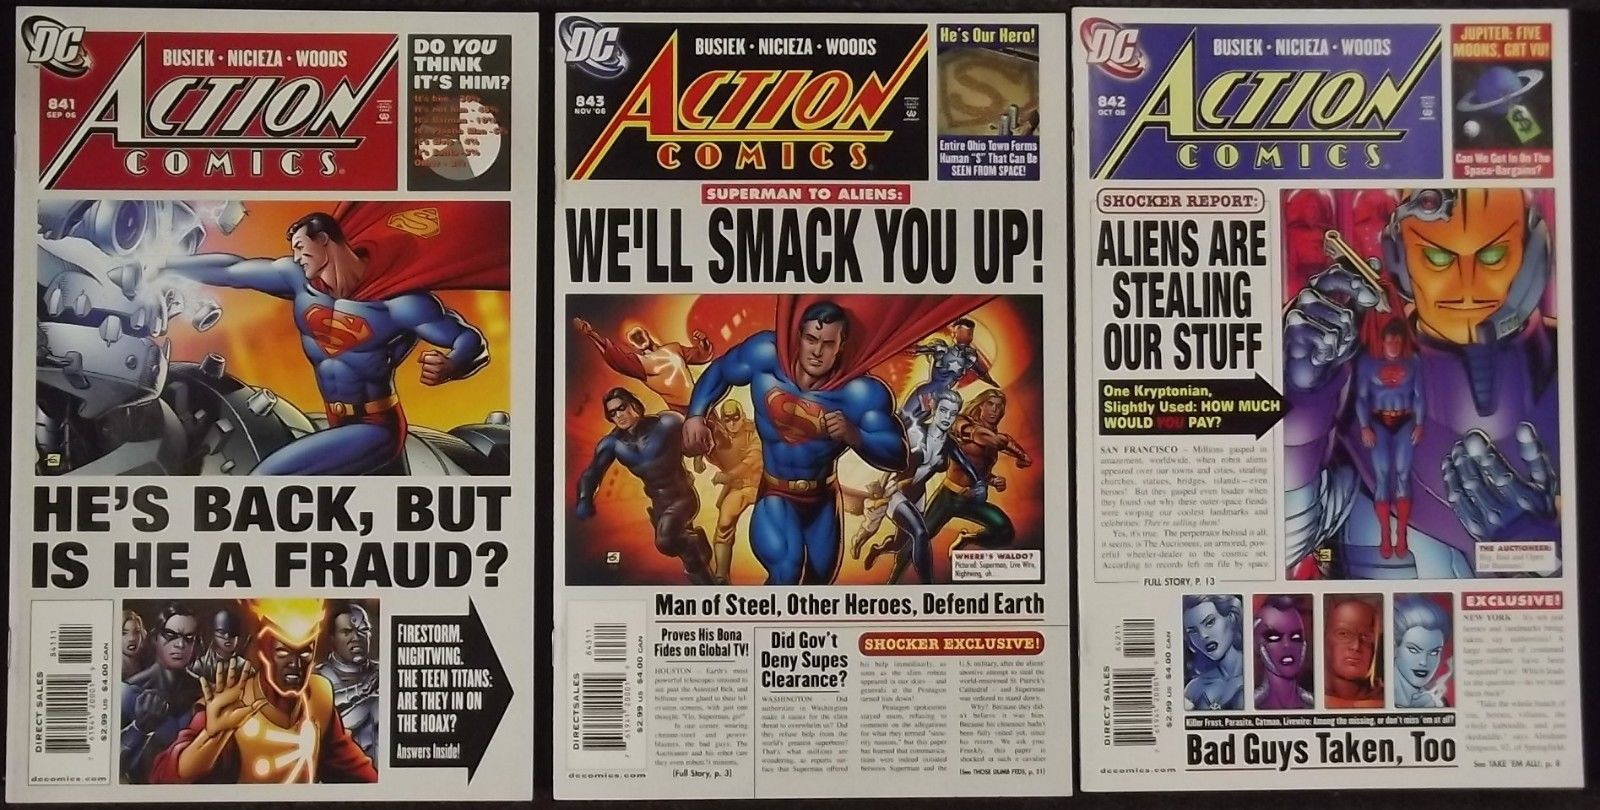 """ACTION COMICS #'s 841, 842, 843 COMPLETE """"BACK IN ACTION ..."""